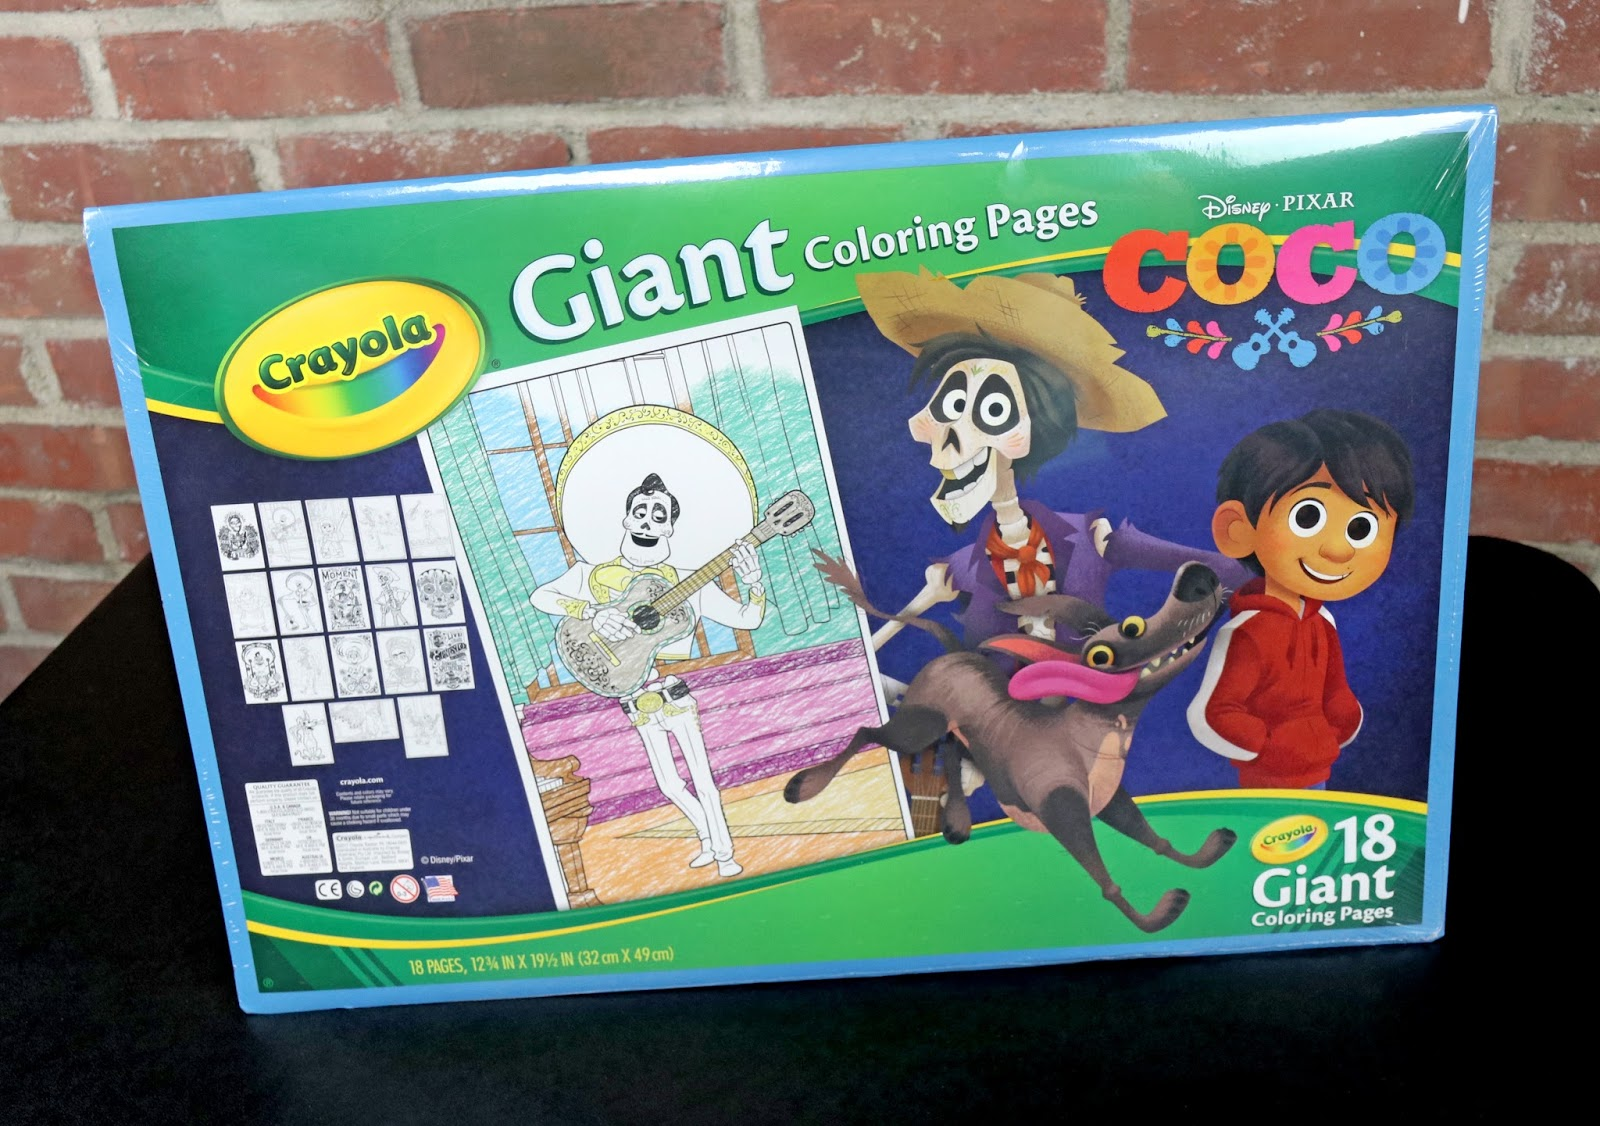 dan the pixar fan coco crayola giant coloring book